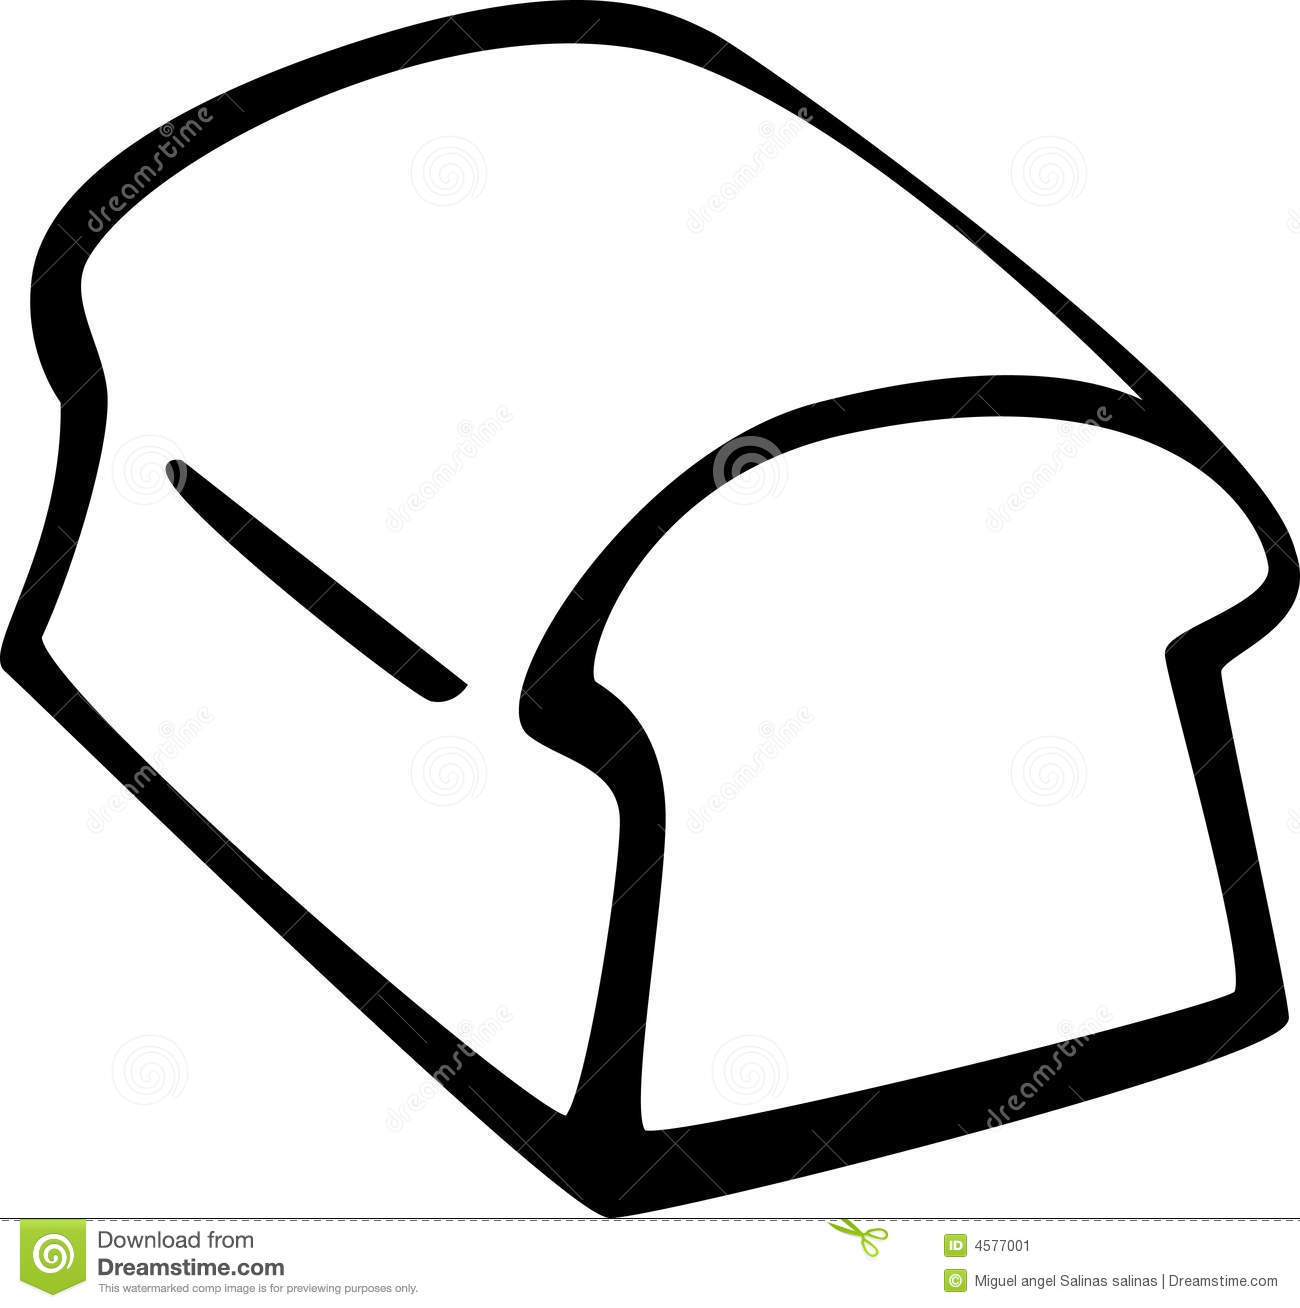 Bread Loaf Vector Illustration Stock Image   Image  4577001